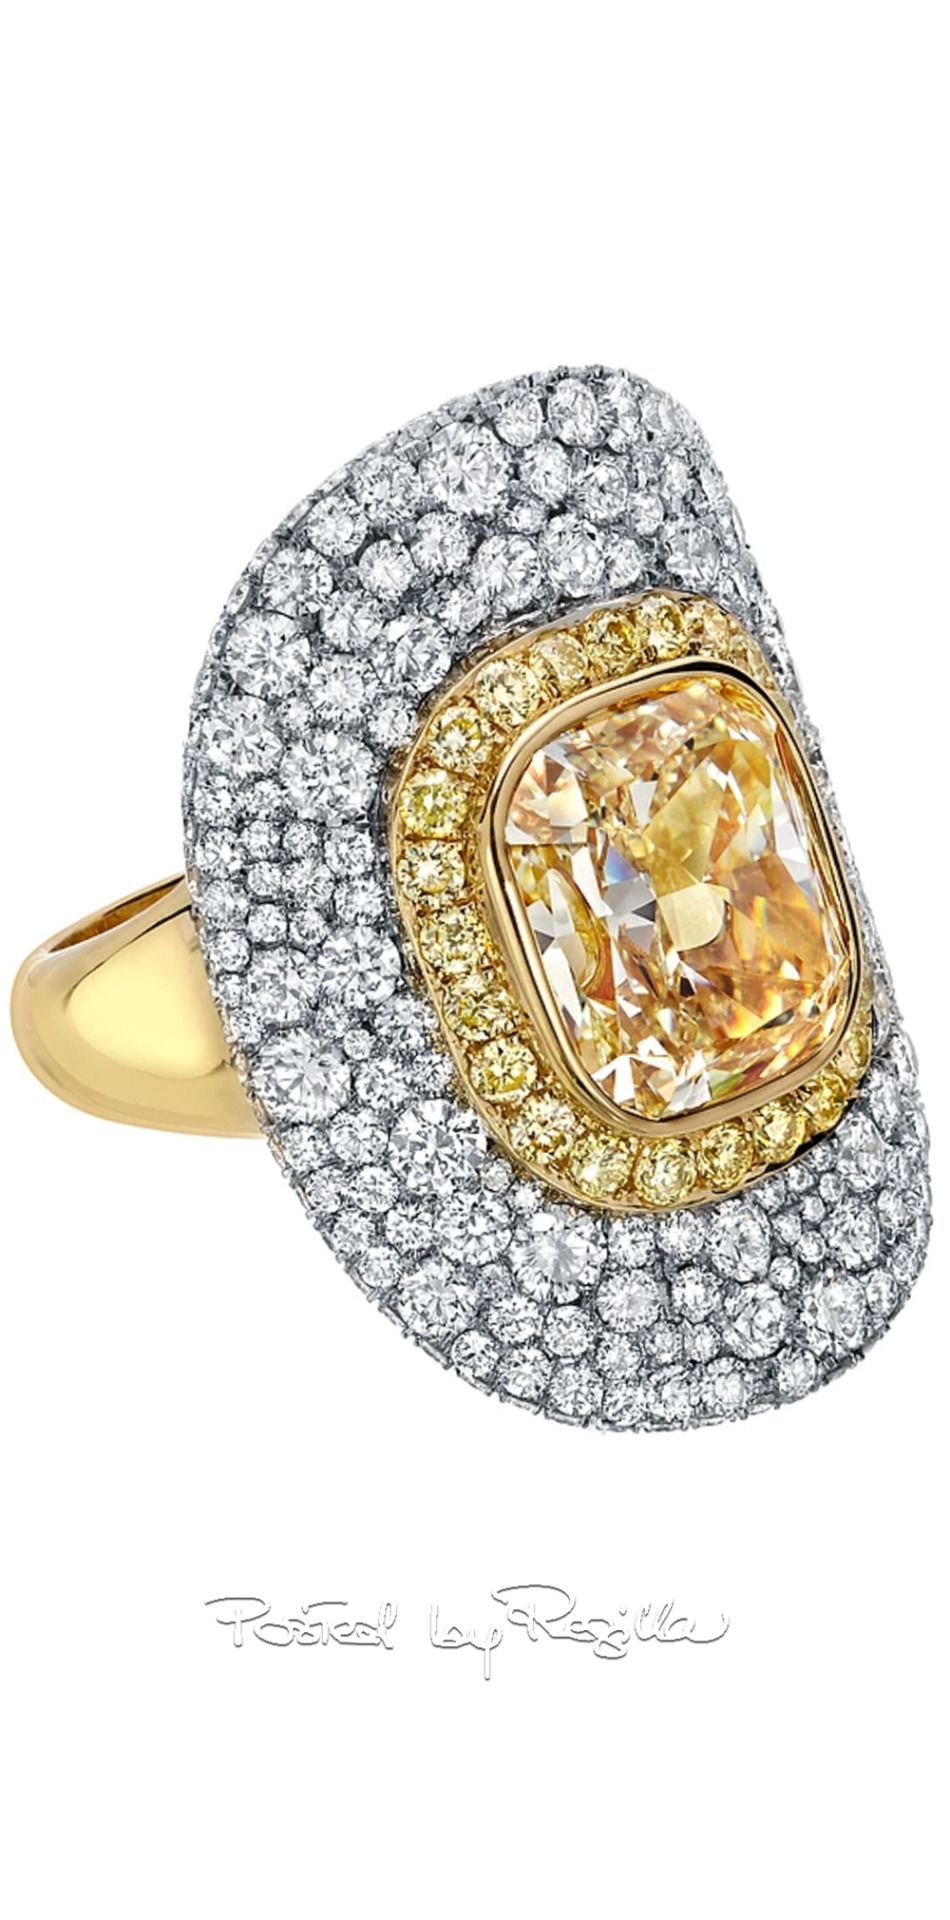 Regilla tamir jewelry beverly hills rings halo pinterest